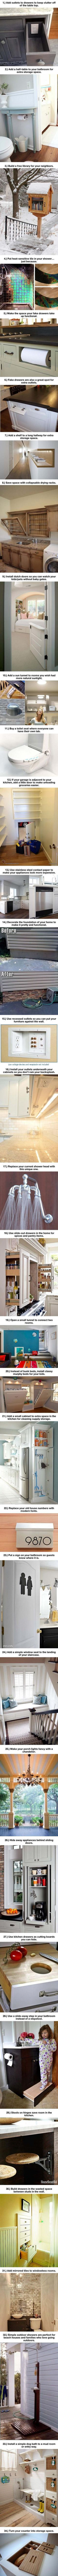 34 Insanely Clever Upgrades To Make Your Home Awesome!